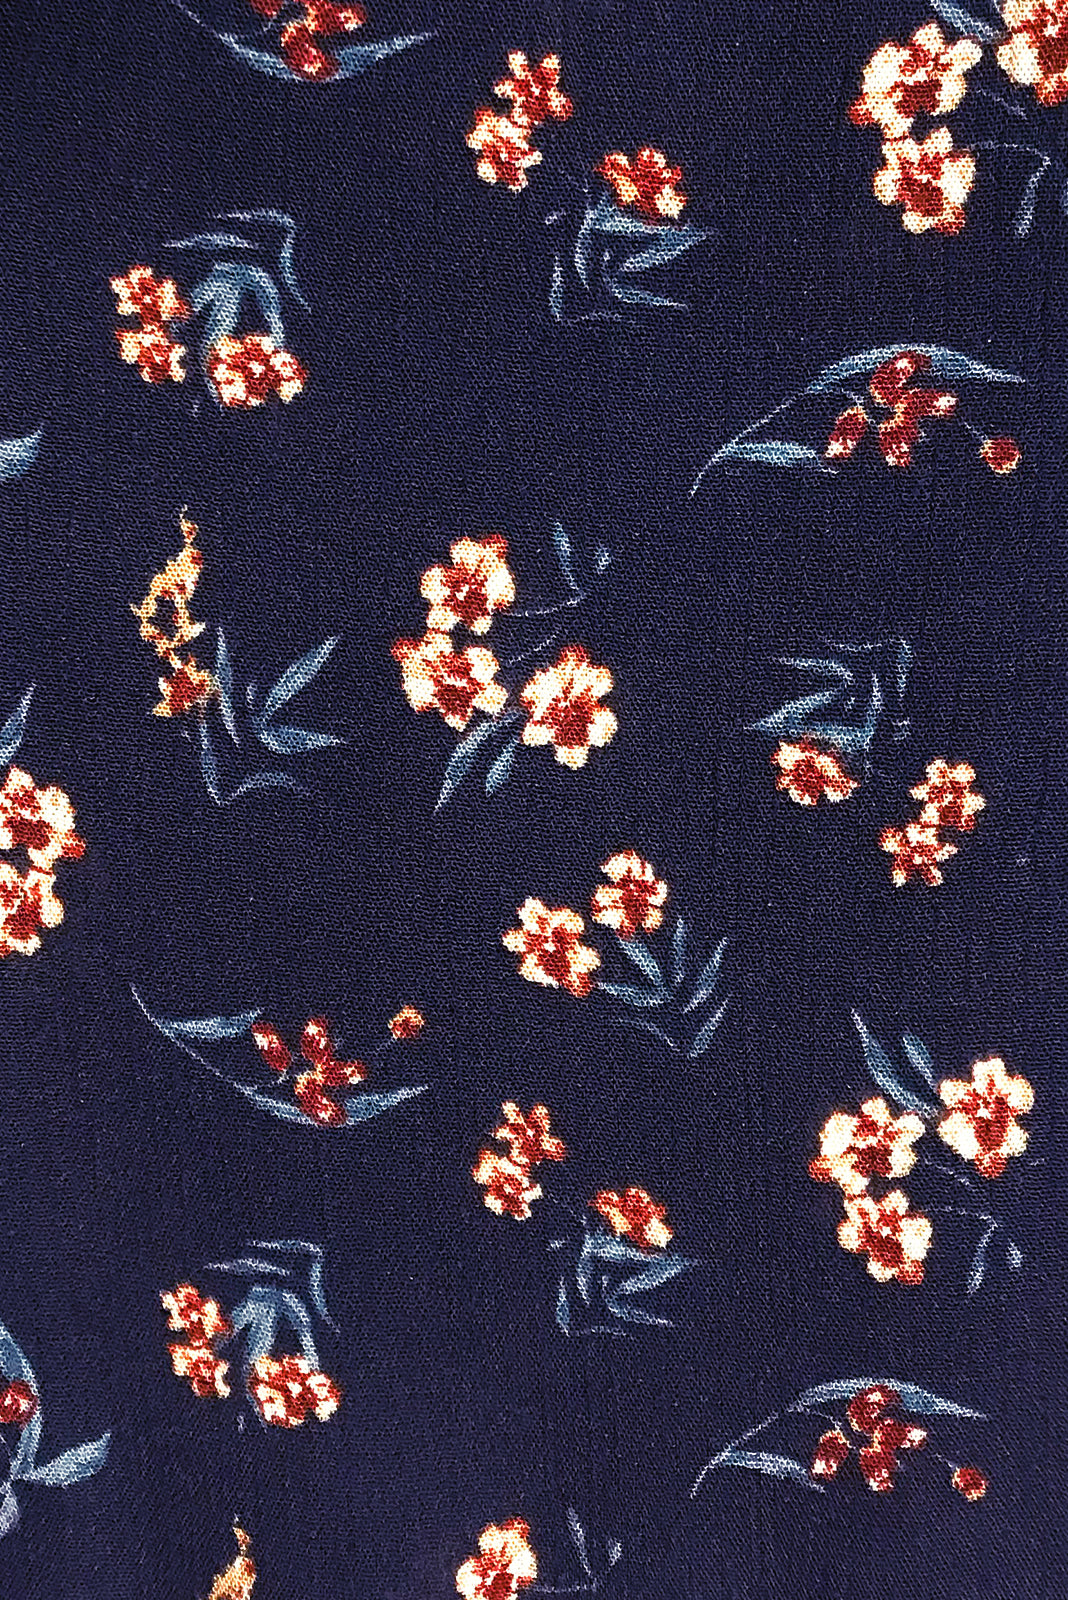 Fabric Swatch of Lulu Bell Inky Buds Mini Dress comes in crinkle rayon in Navy base with chic floral print.